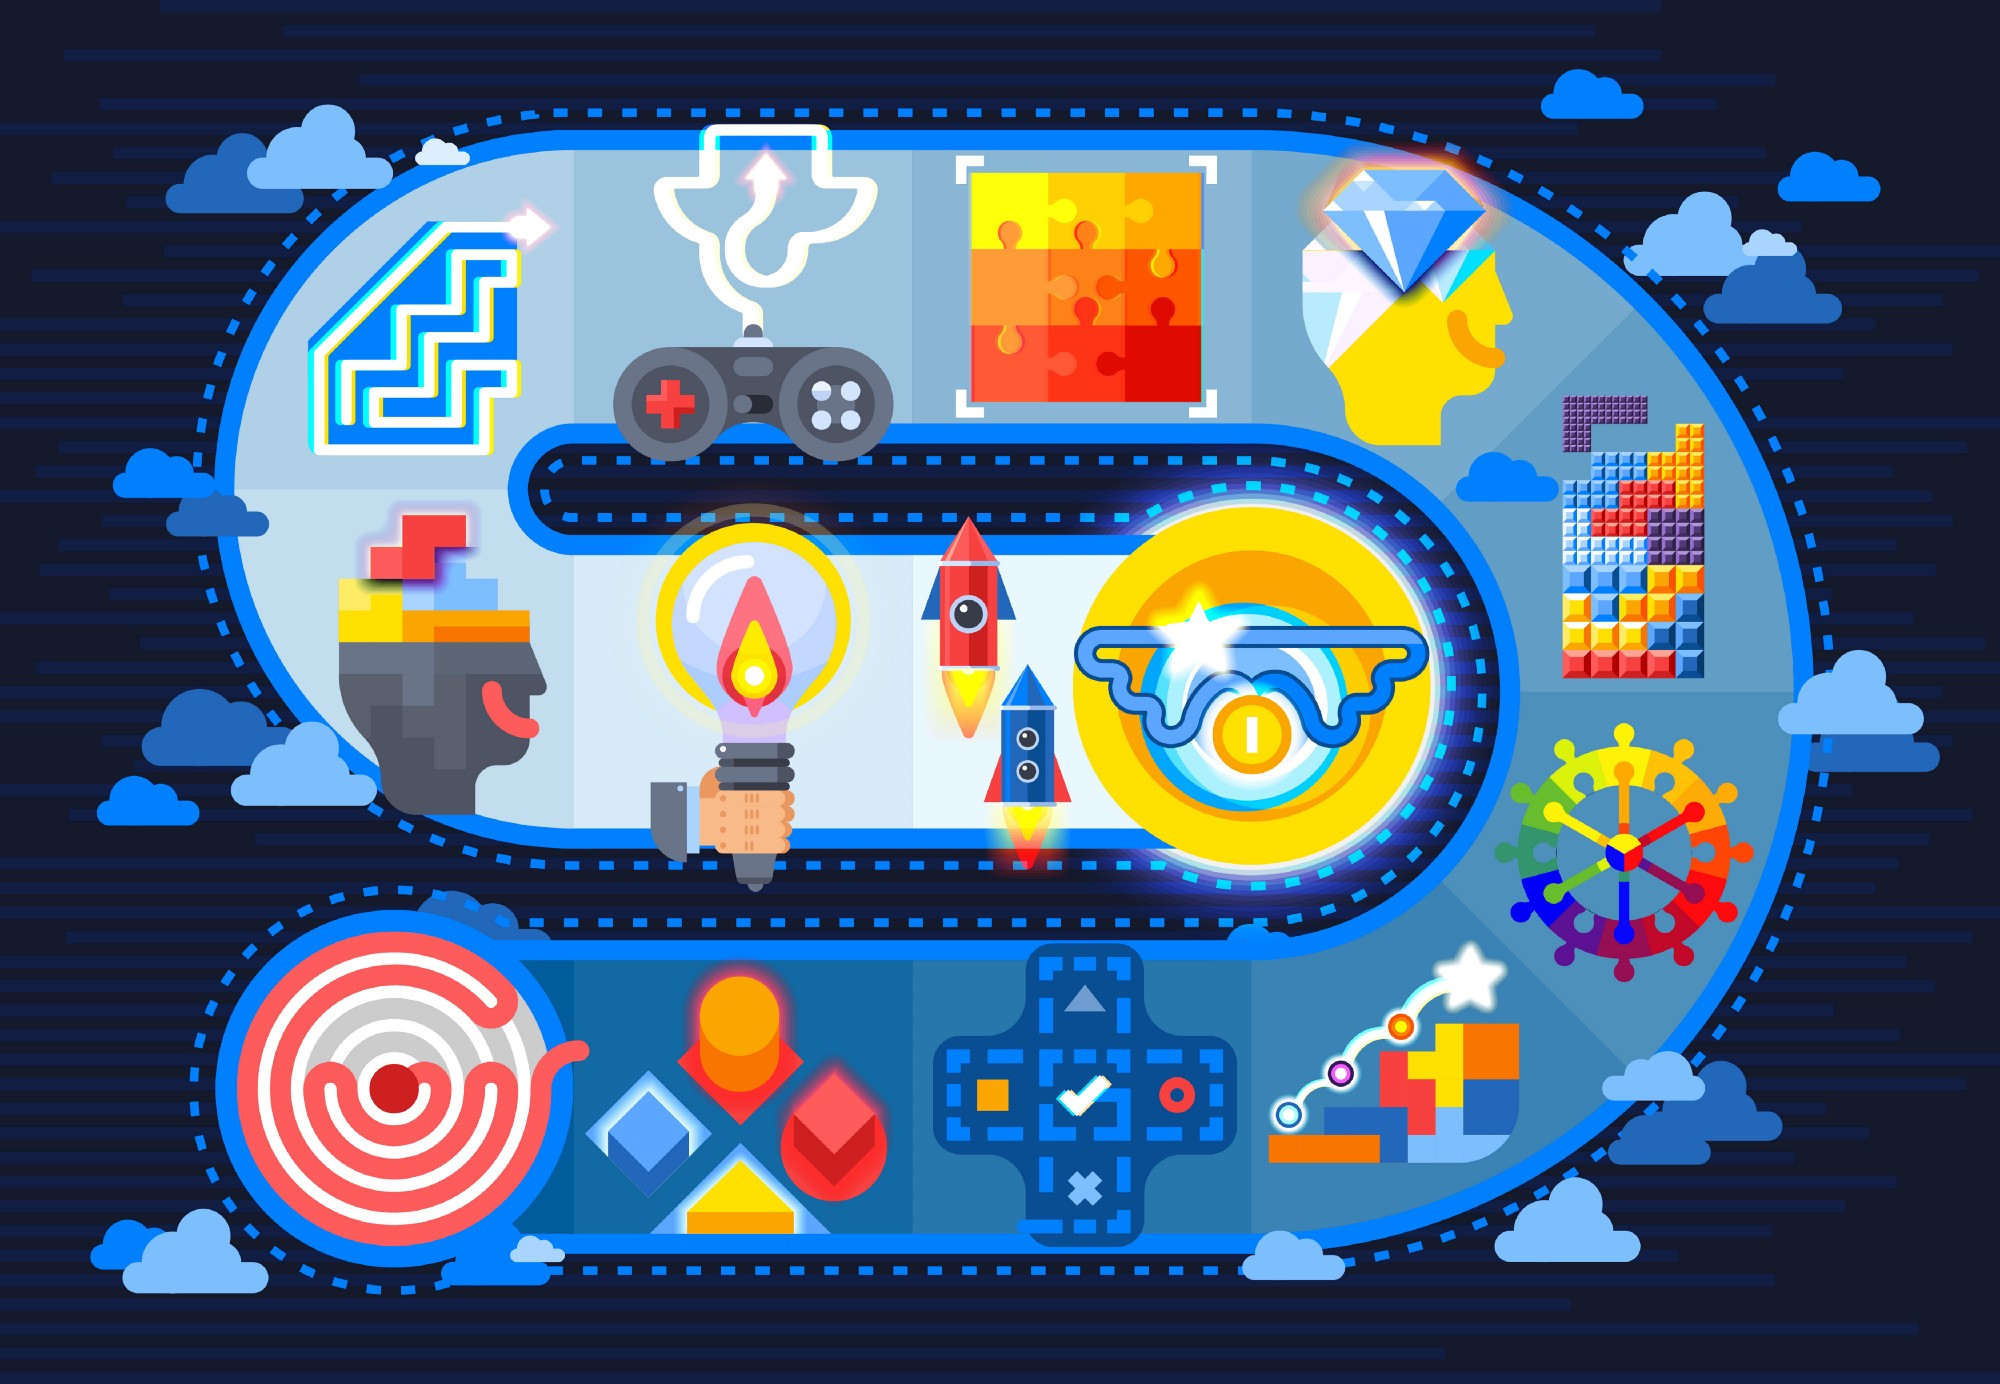 Illustration representing the concept of gamification